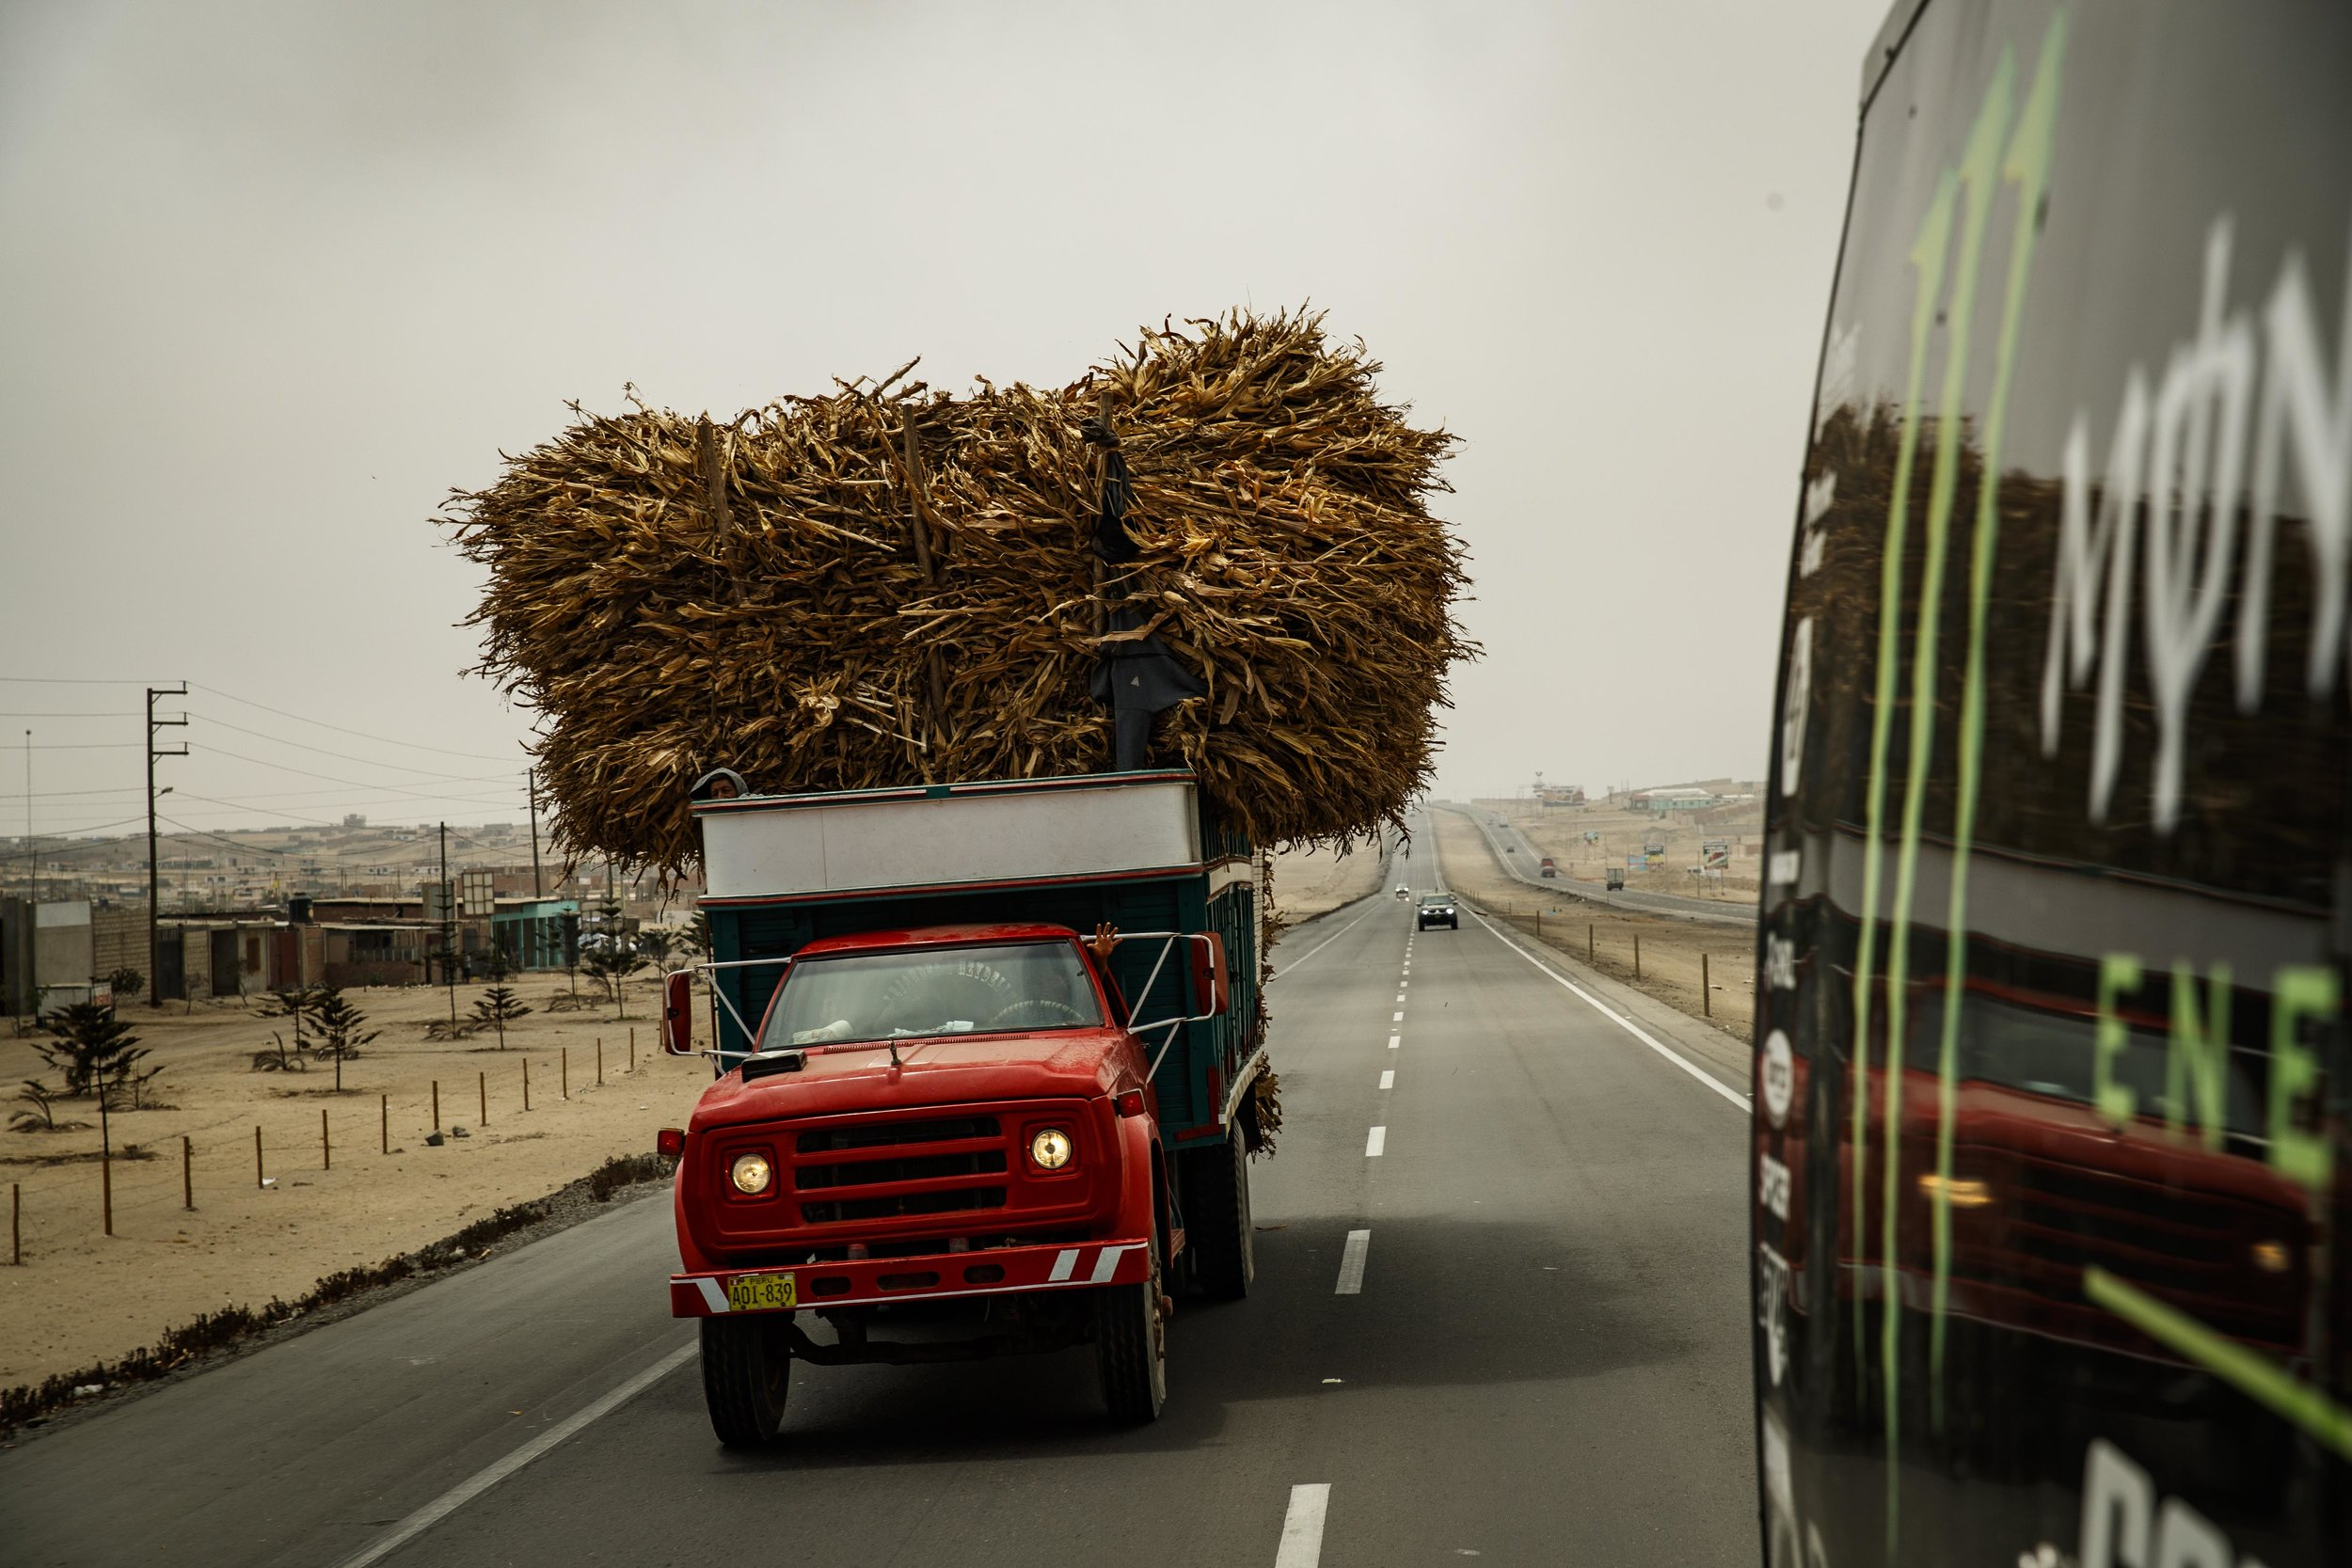 These harvesting trucks stretched from lane to lane in Peru.